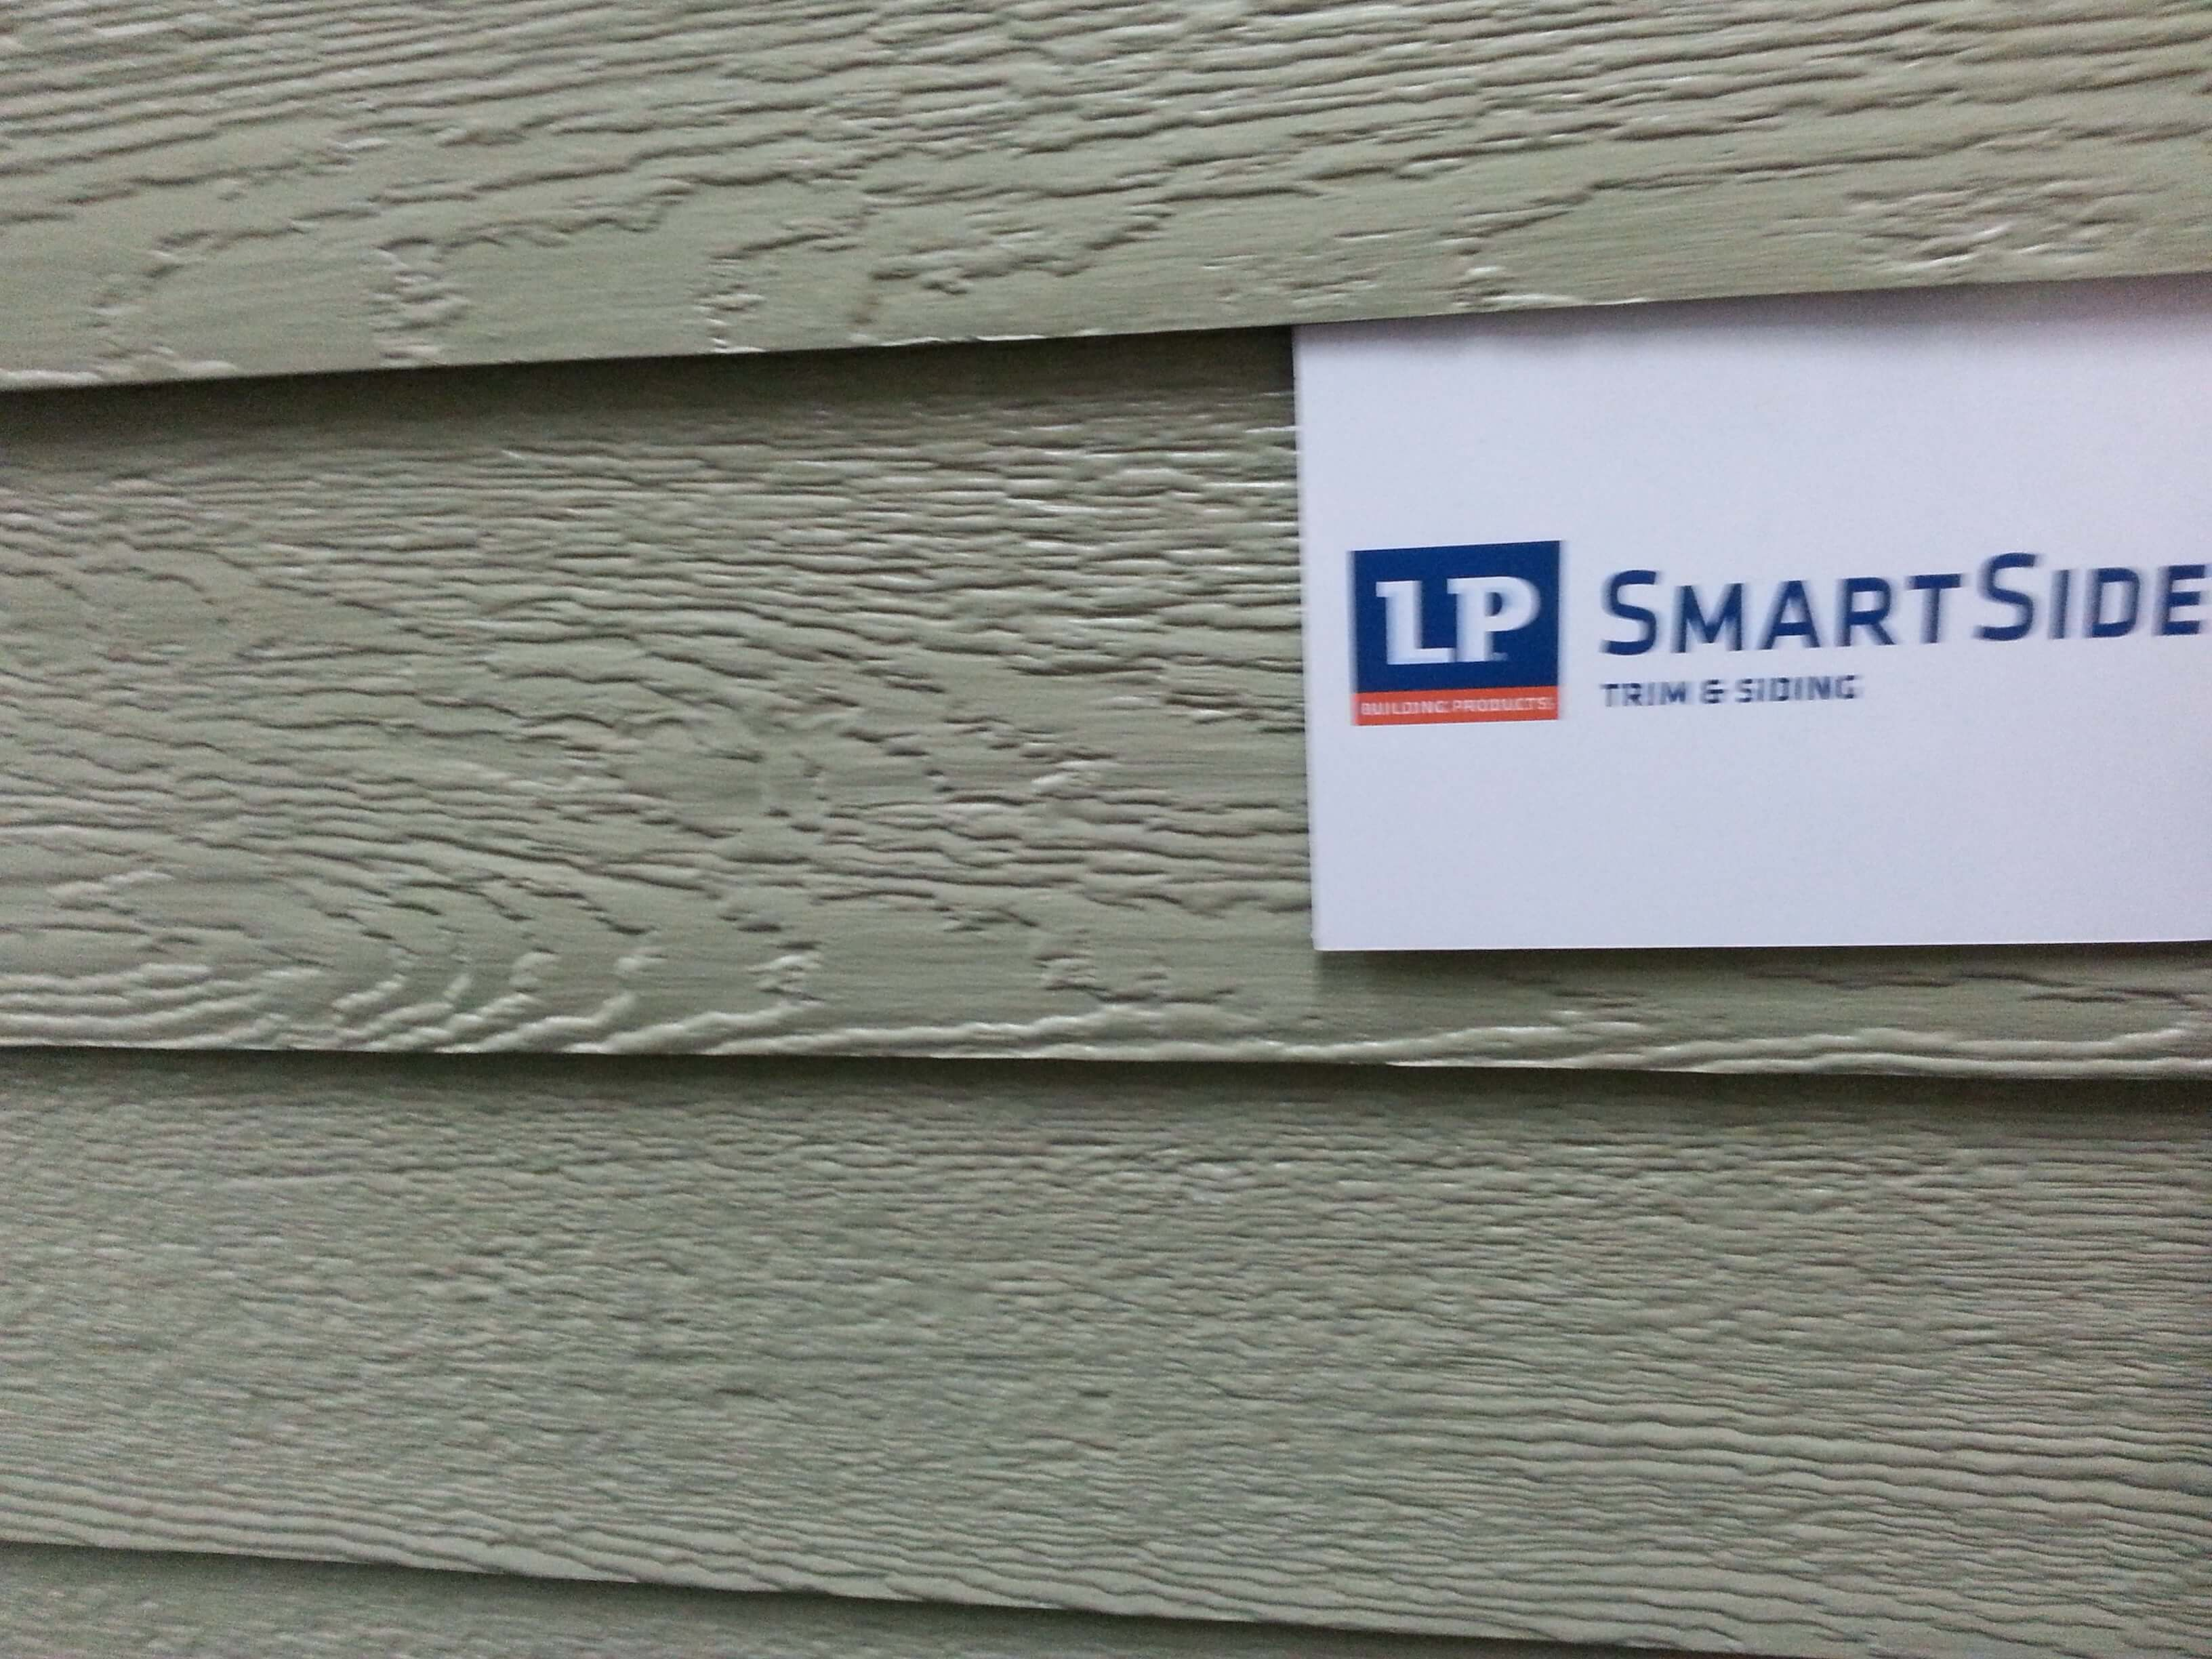 Lp Smartside Vs Hardiplank Cost Of Siding Replacement Wars James Hardie Vs Lp Smartside In